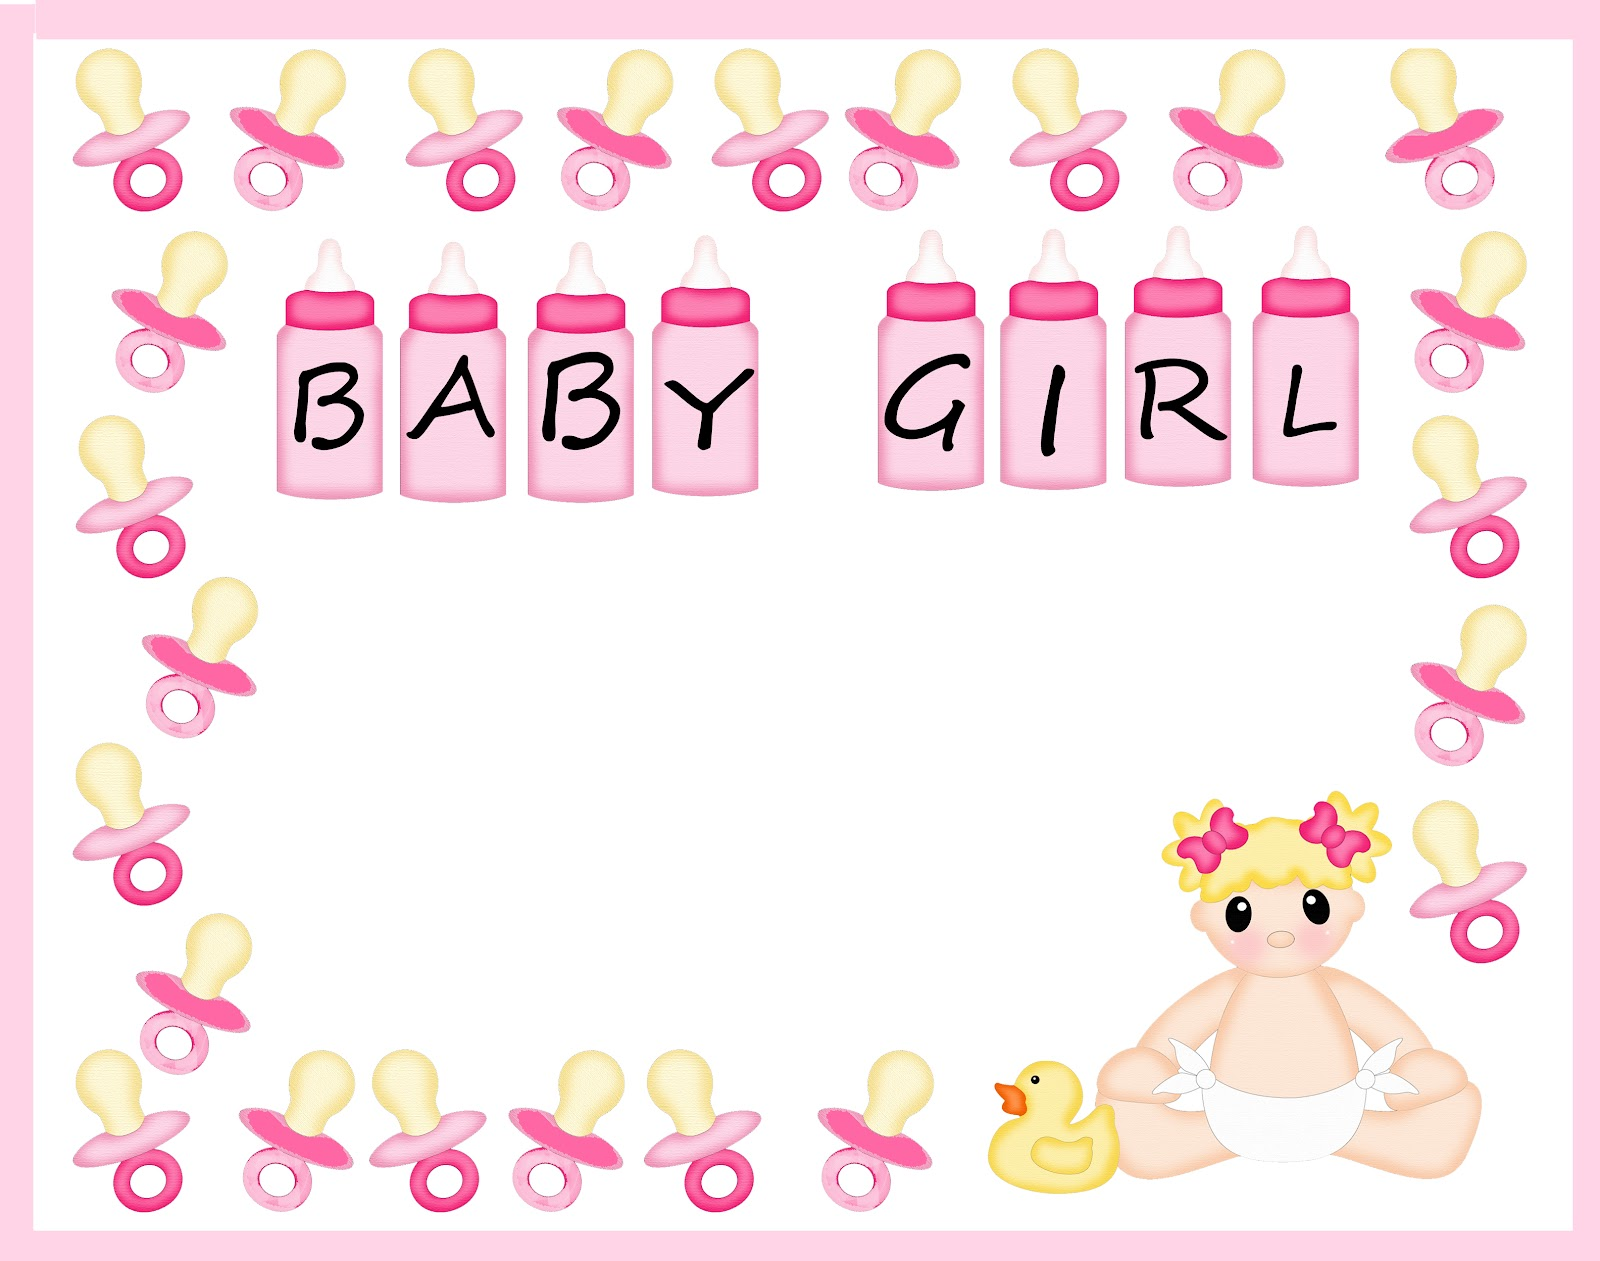 Free border cliparts download. Clipart frame baby girl